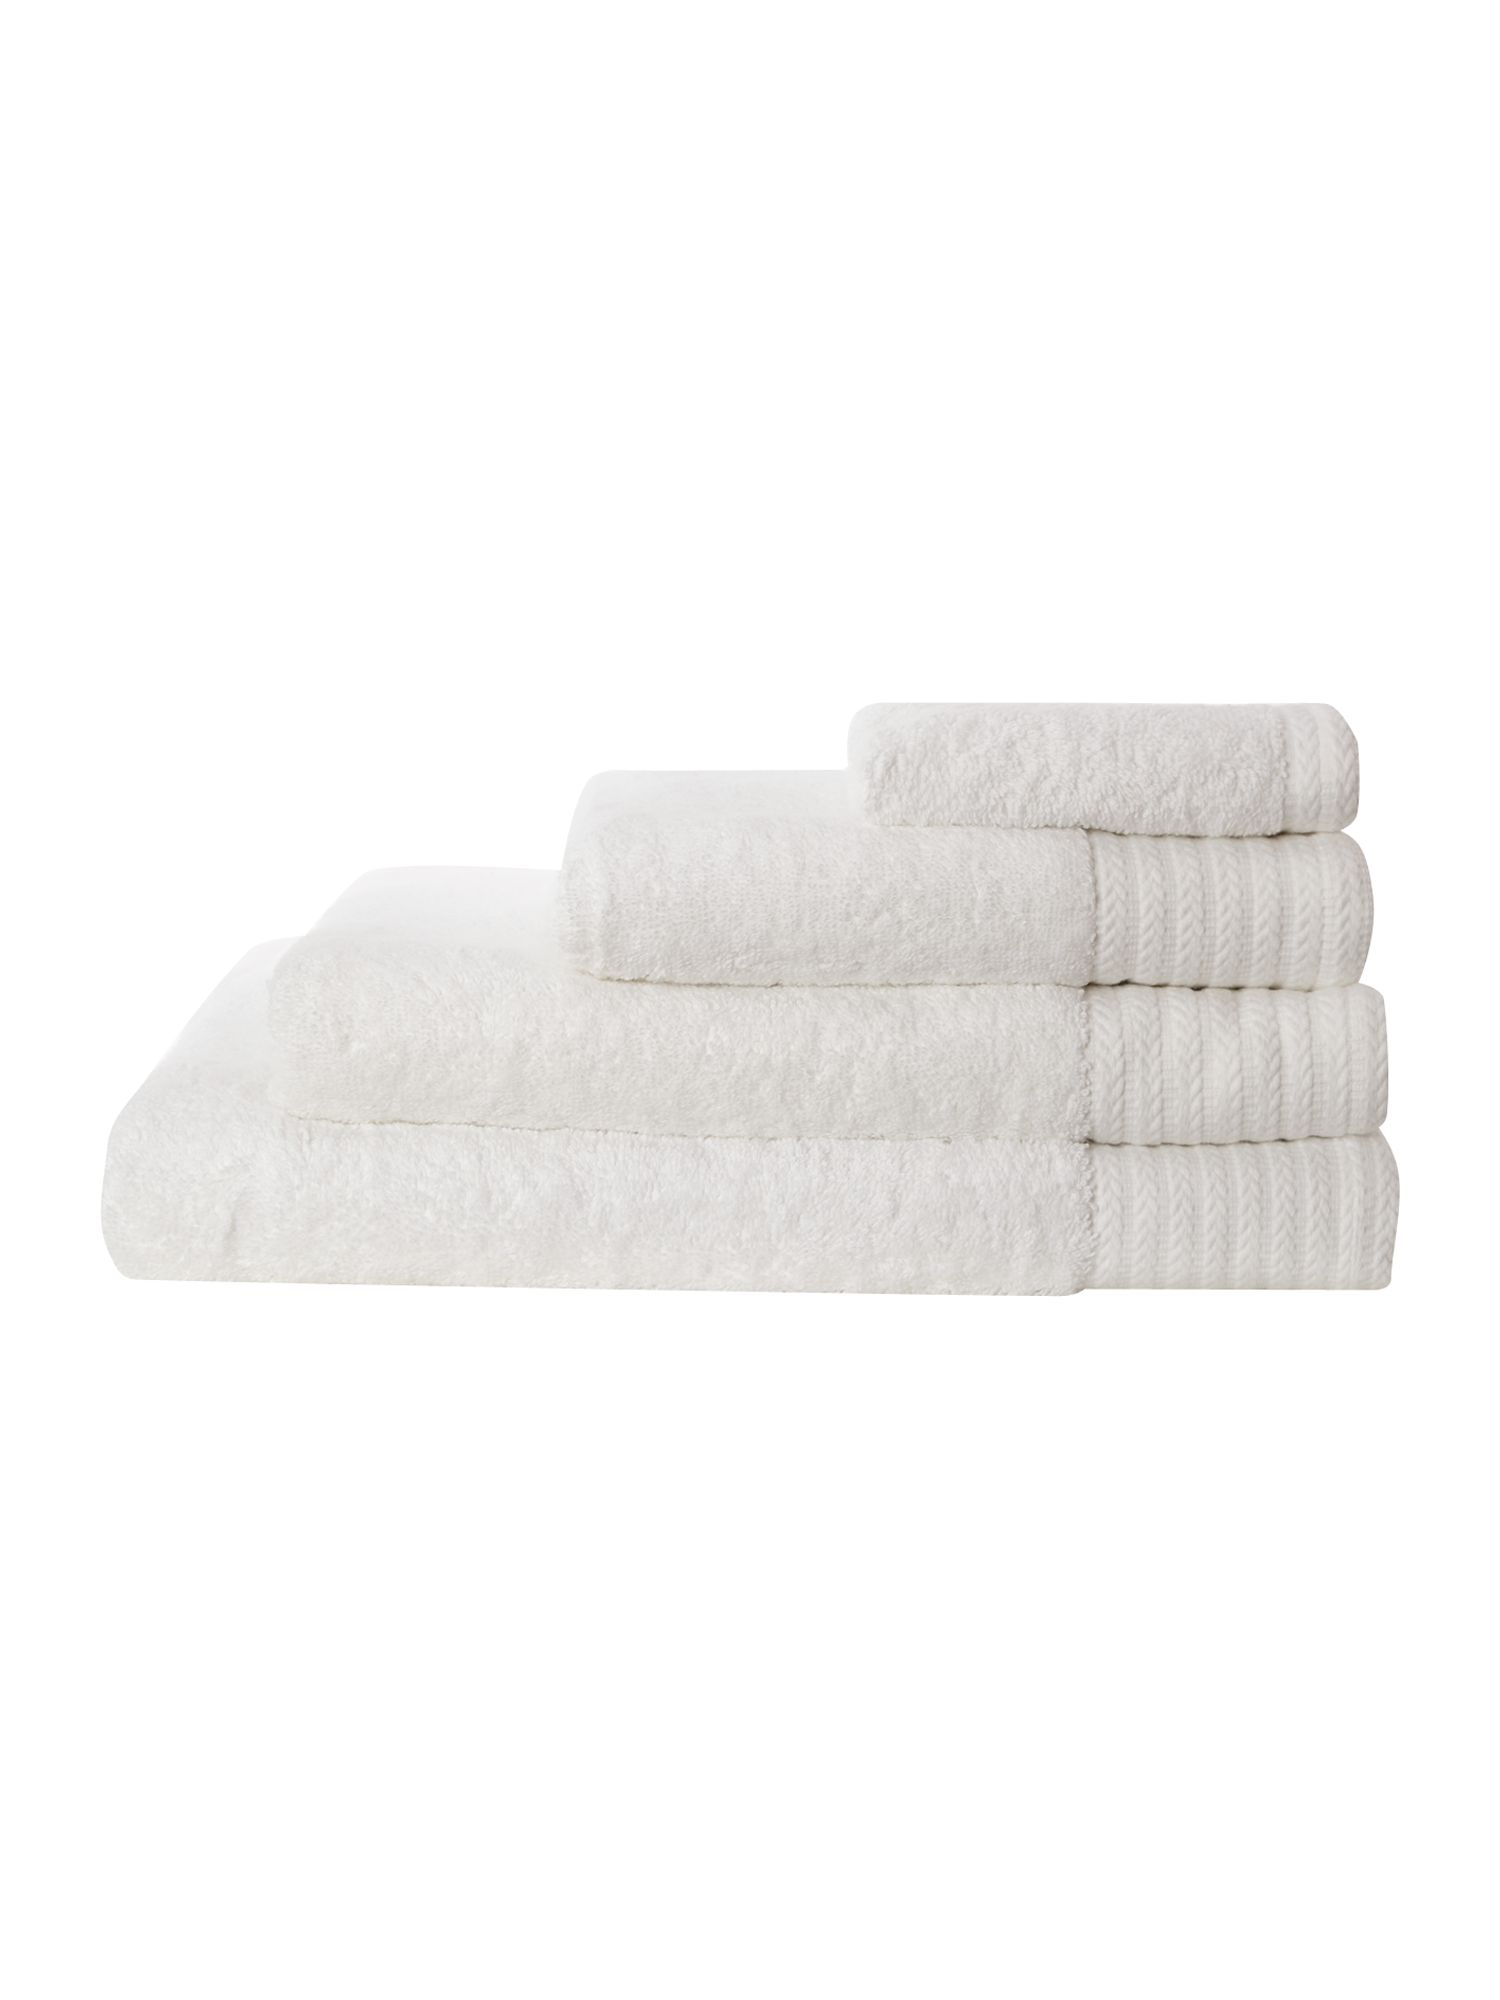 Luxury 700 gsm cotton towels in white